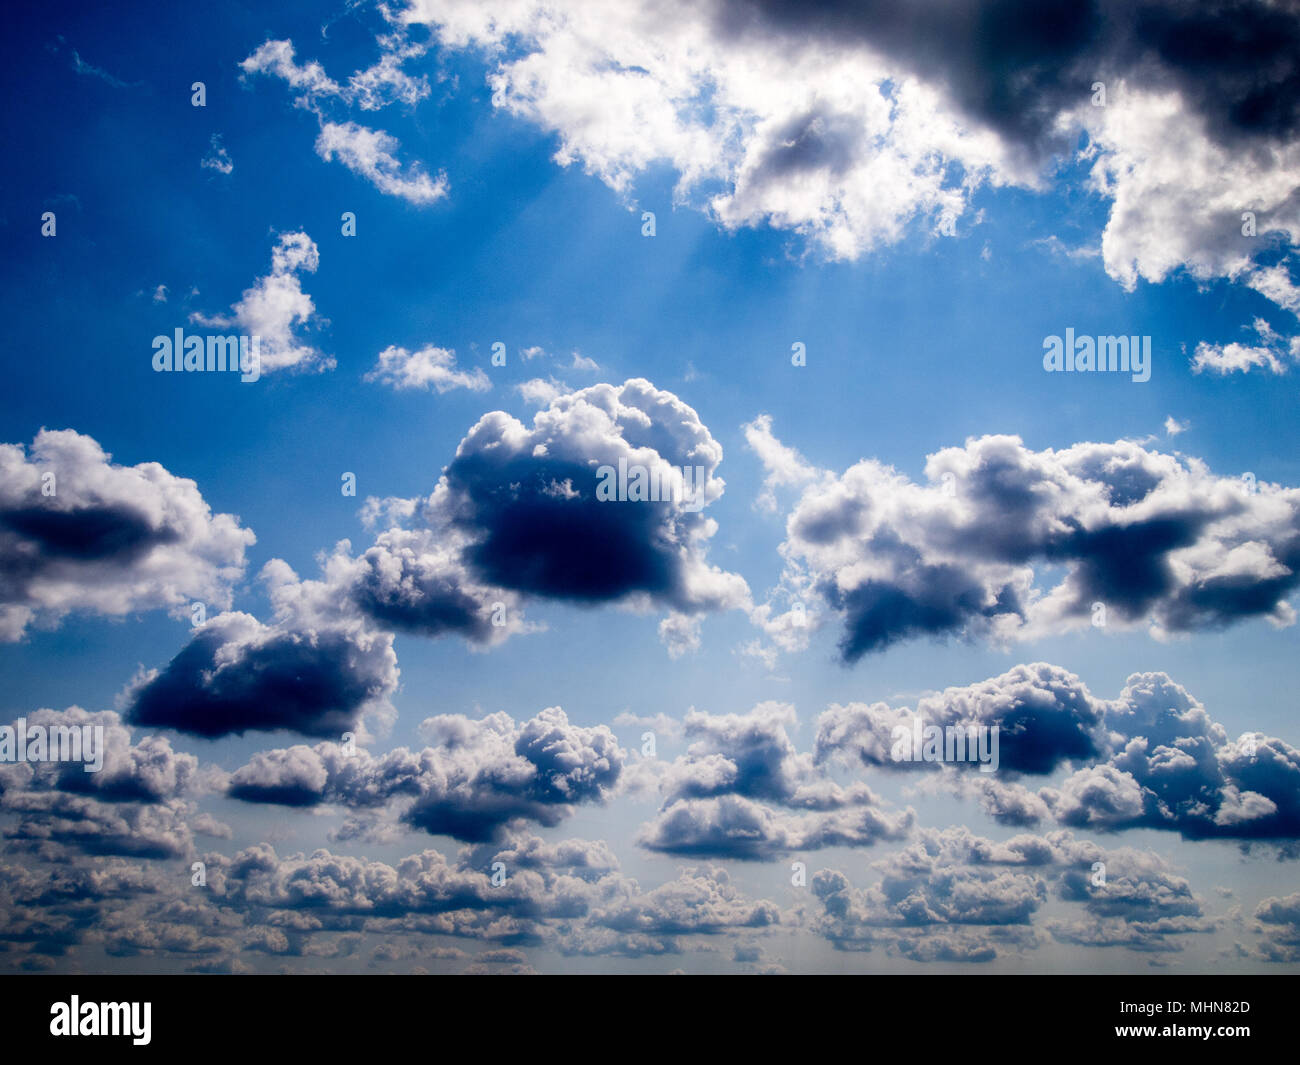 Blue sky with white fluffy clouds - Stock Image